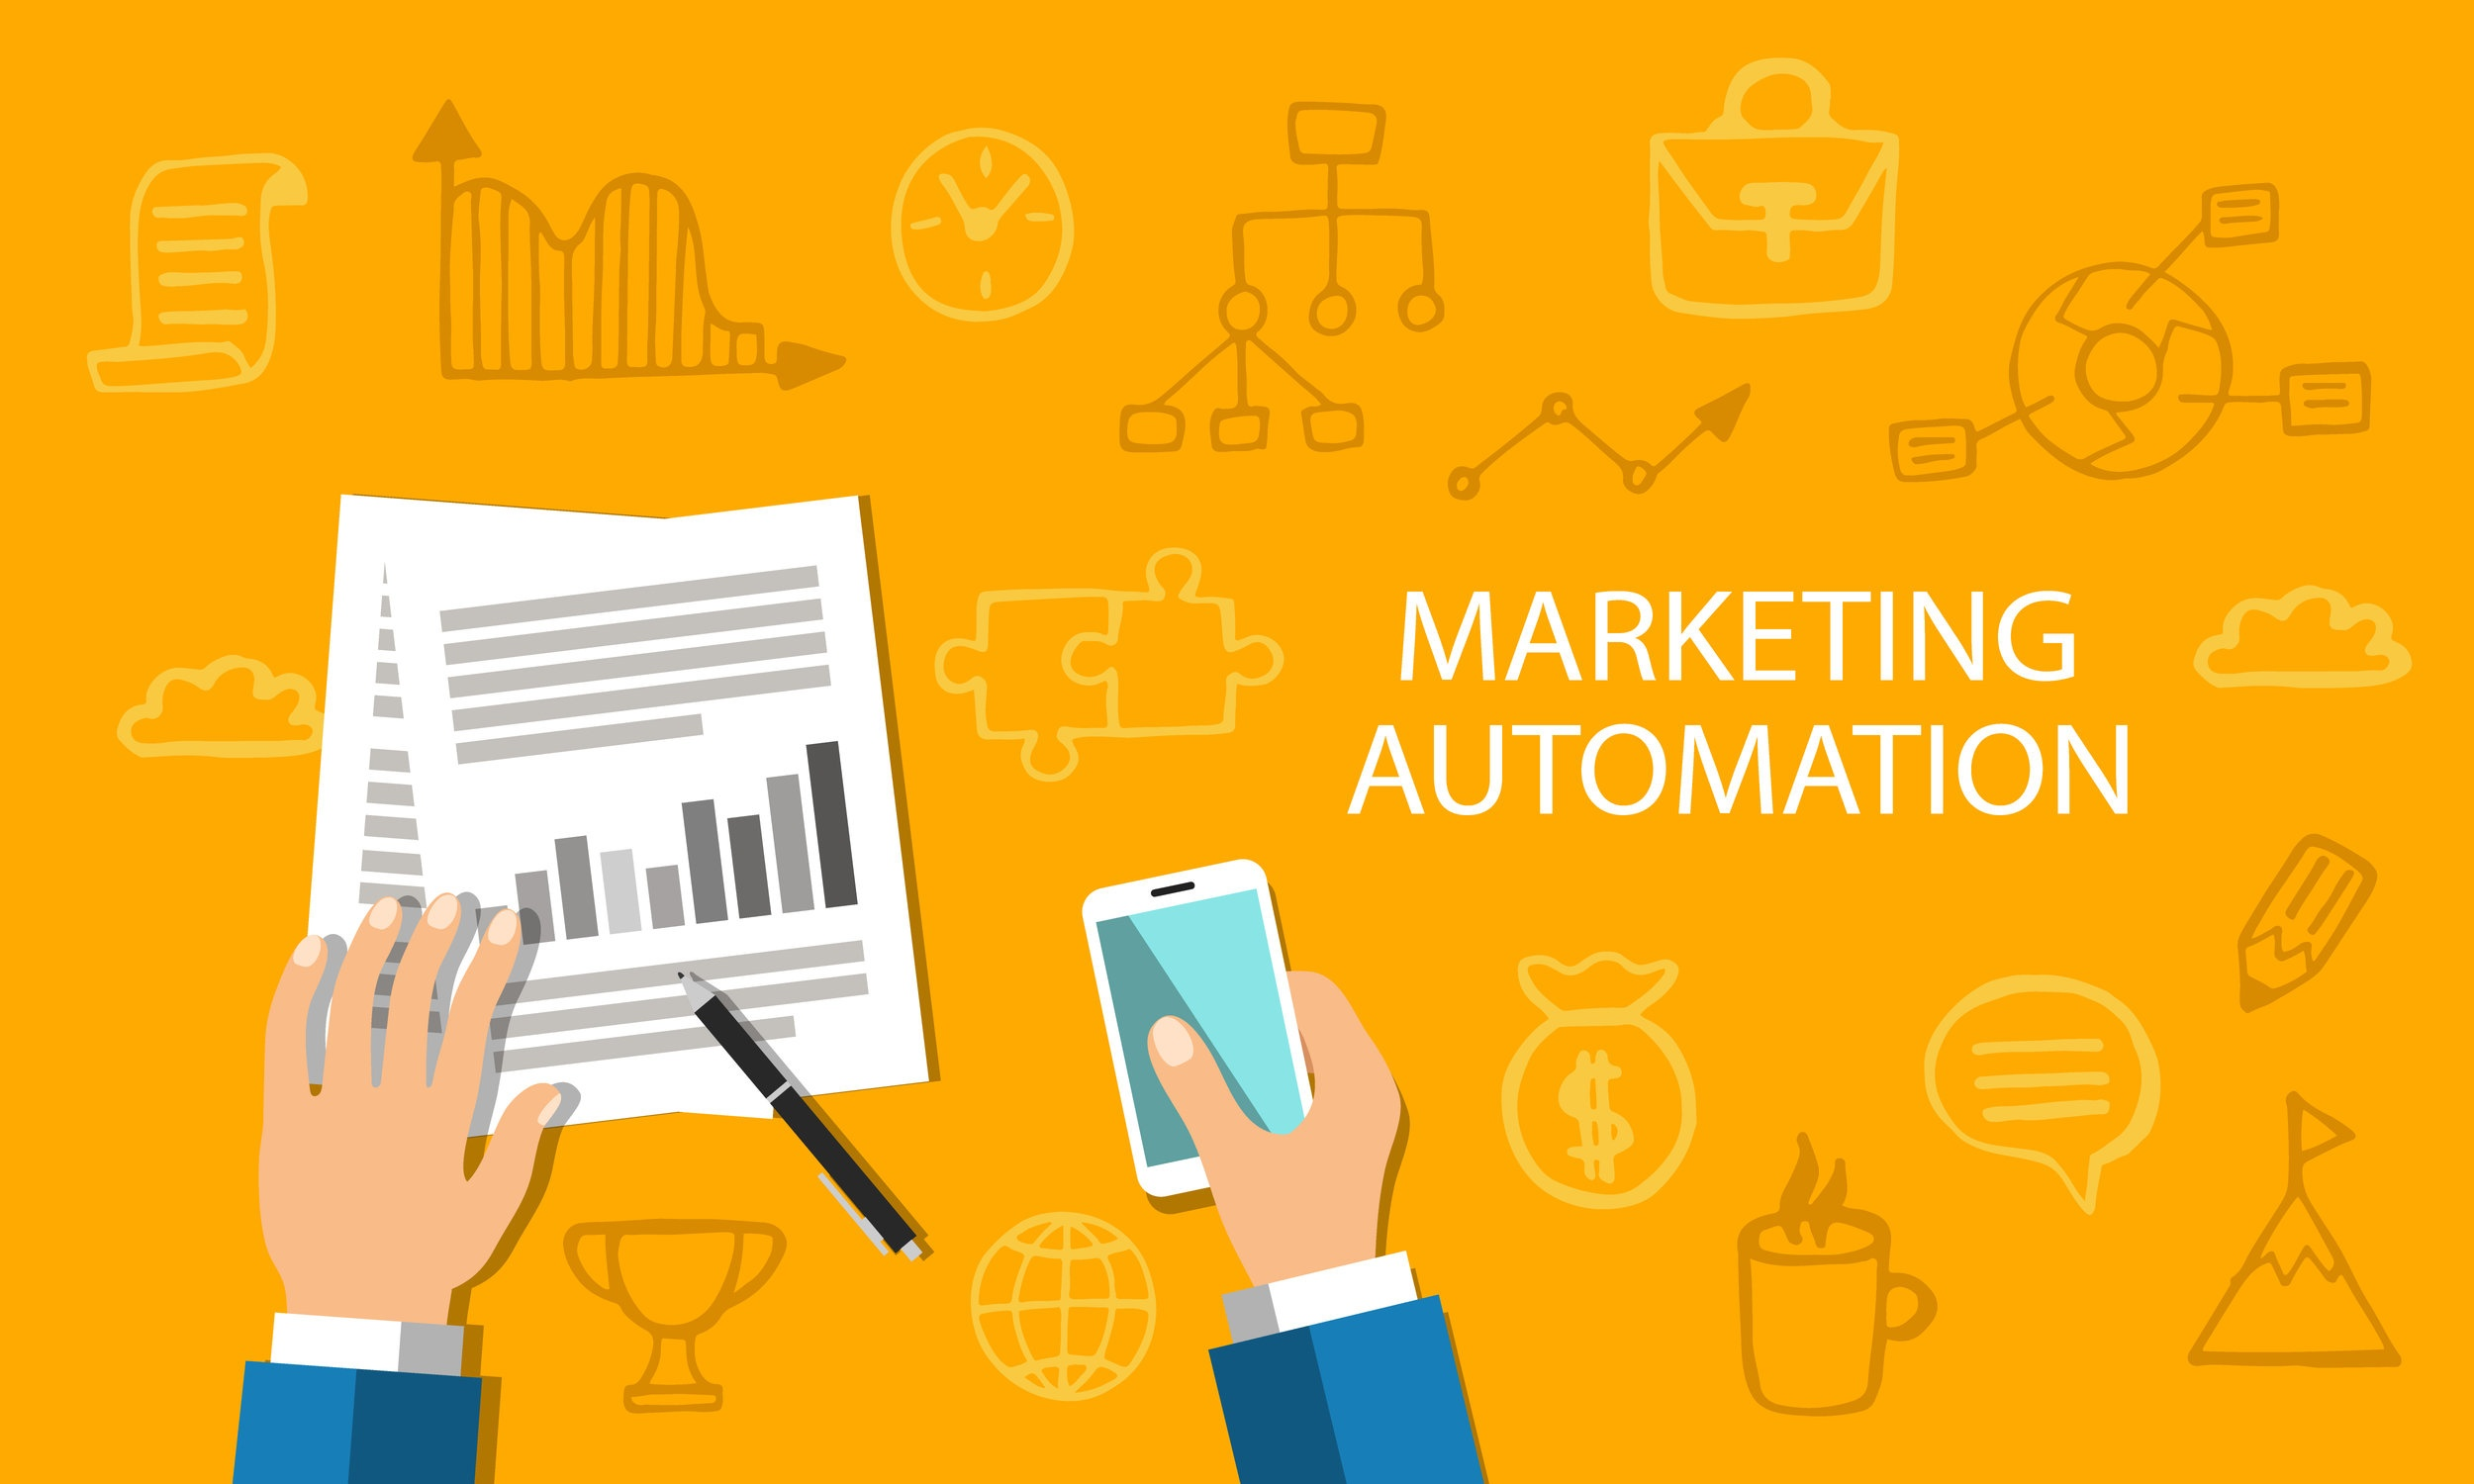 How Marketing Automation Can Help You Save Time and Money [Infographic]